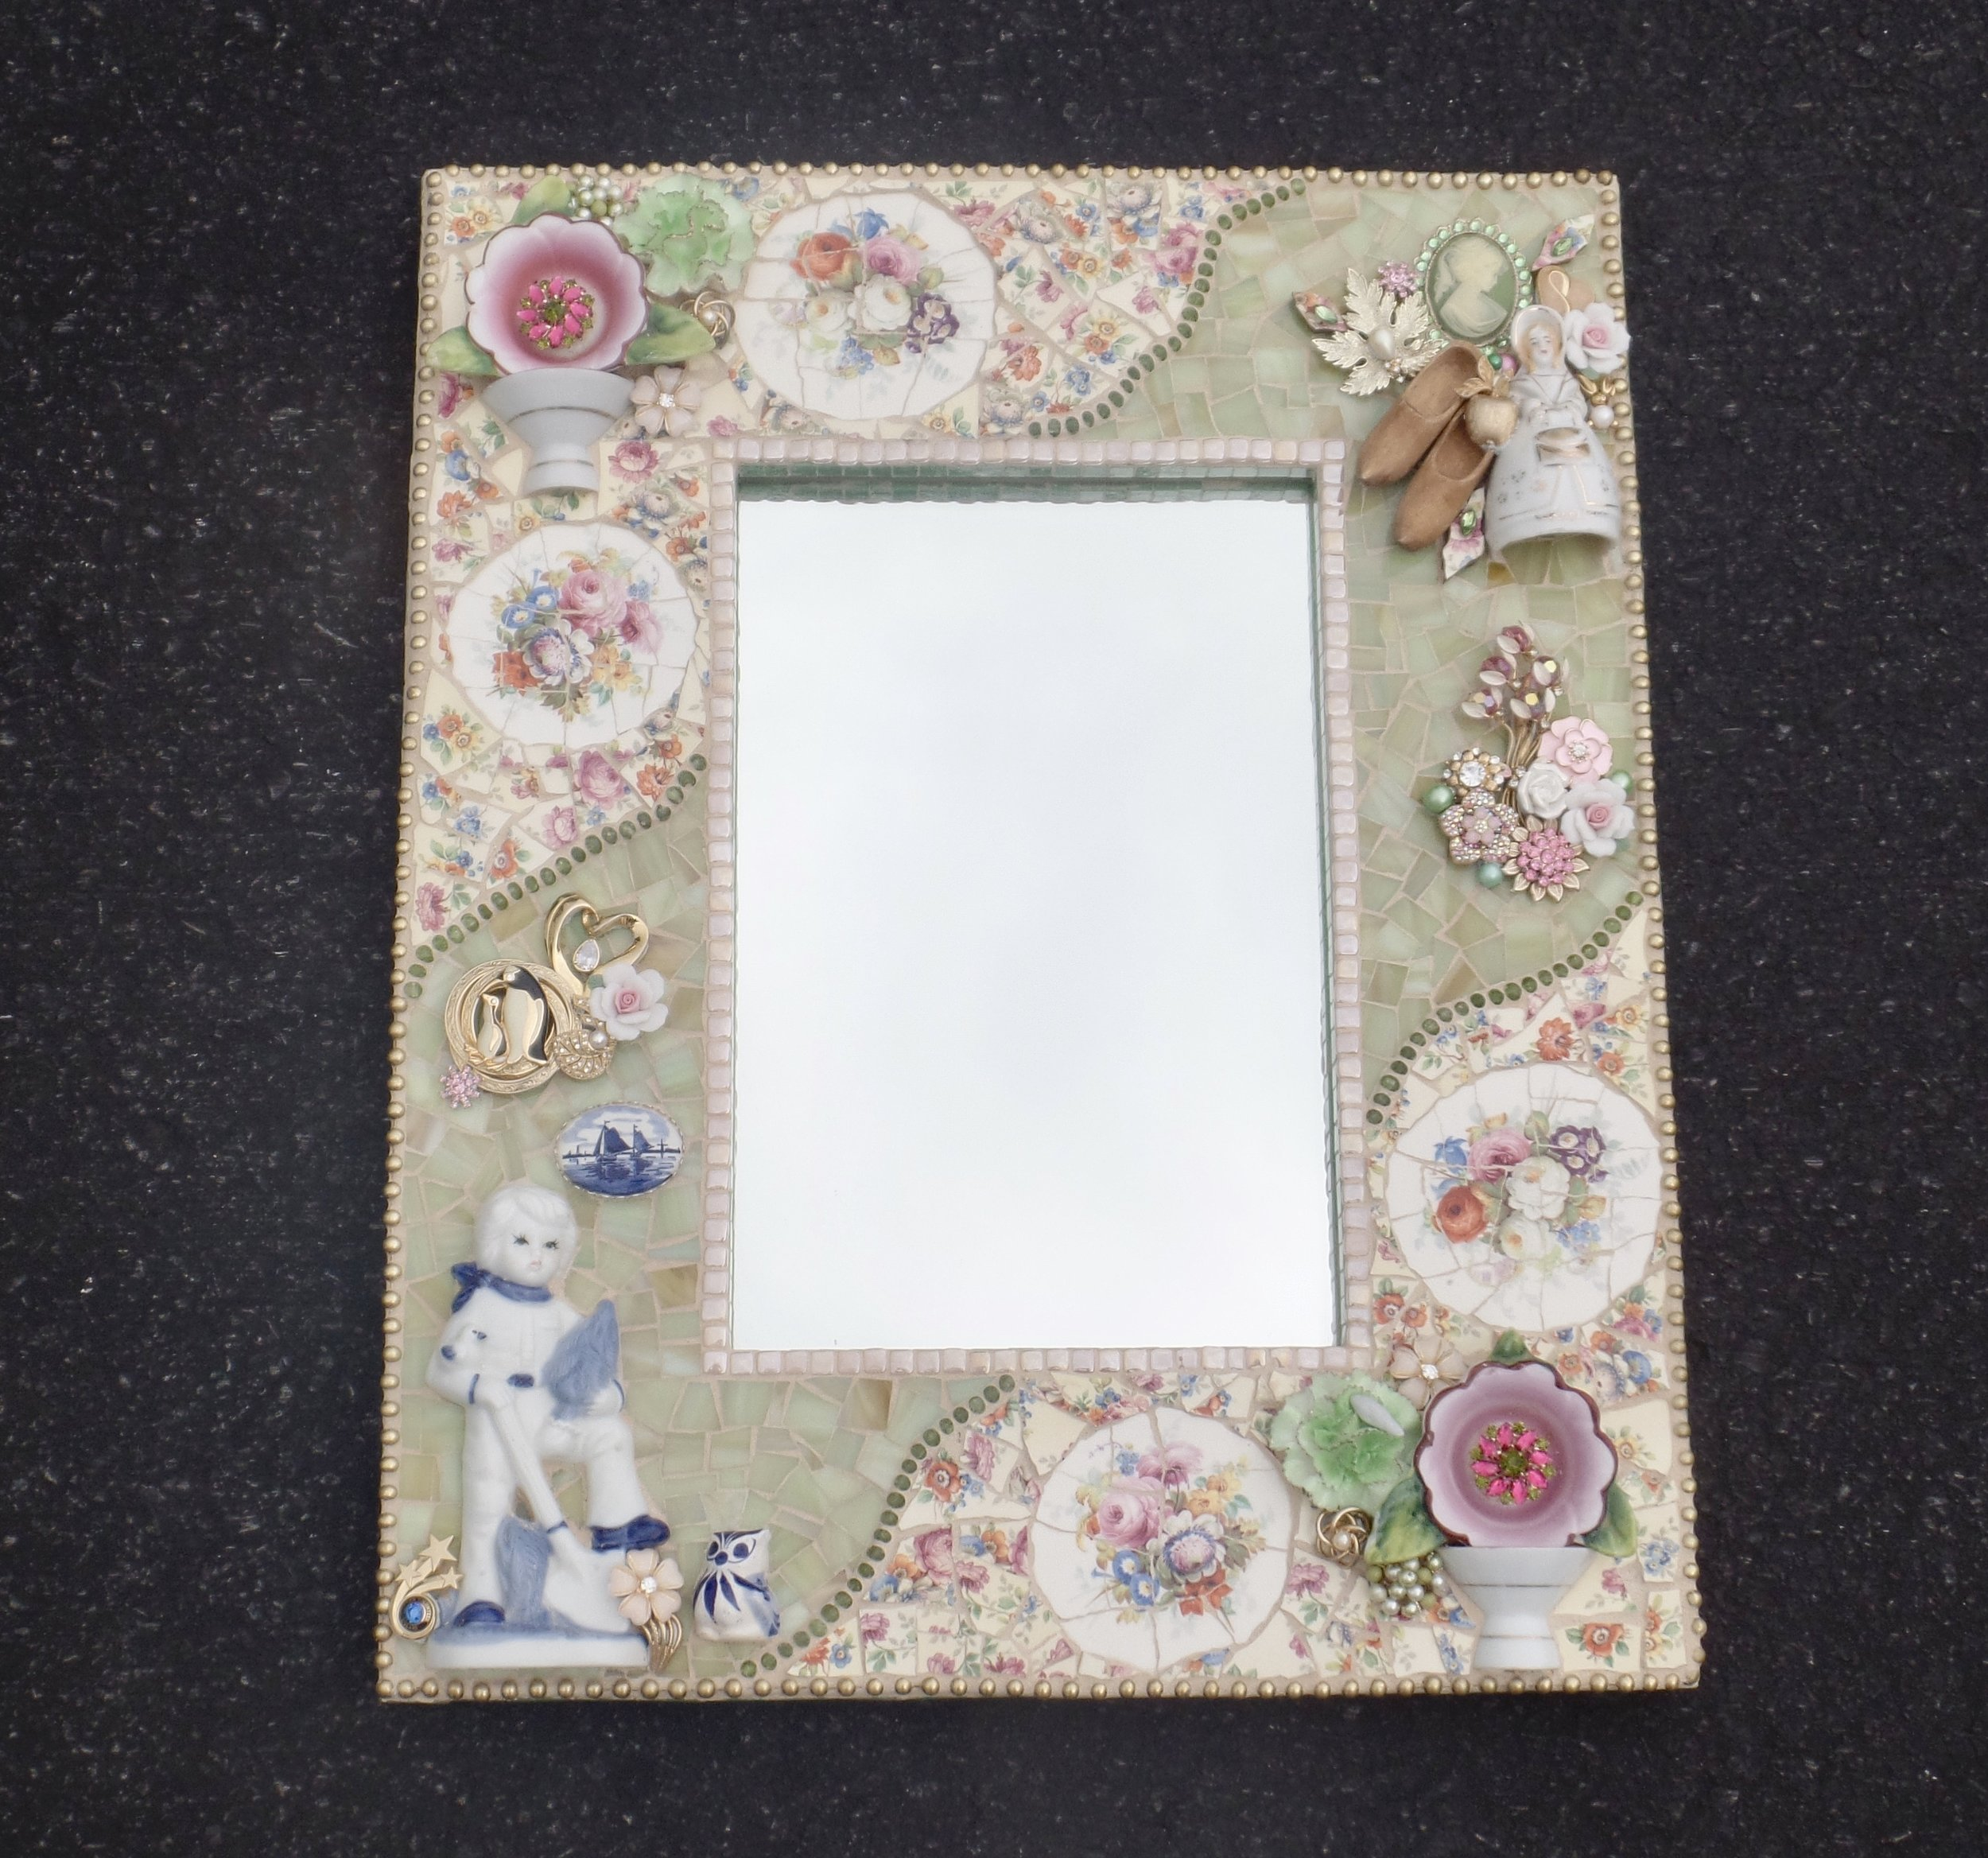 I just completed this story mirror from found objects I had in my studio.